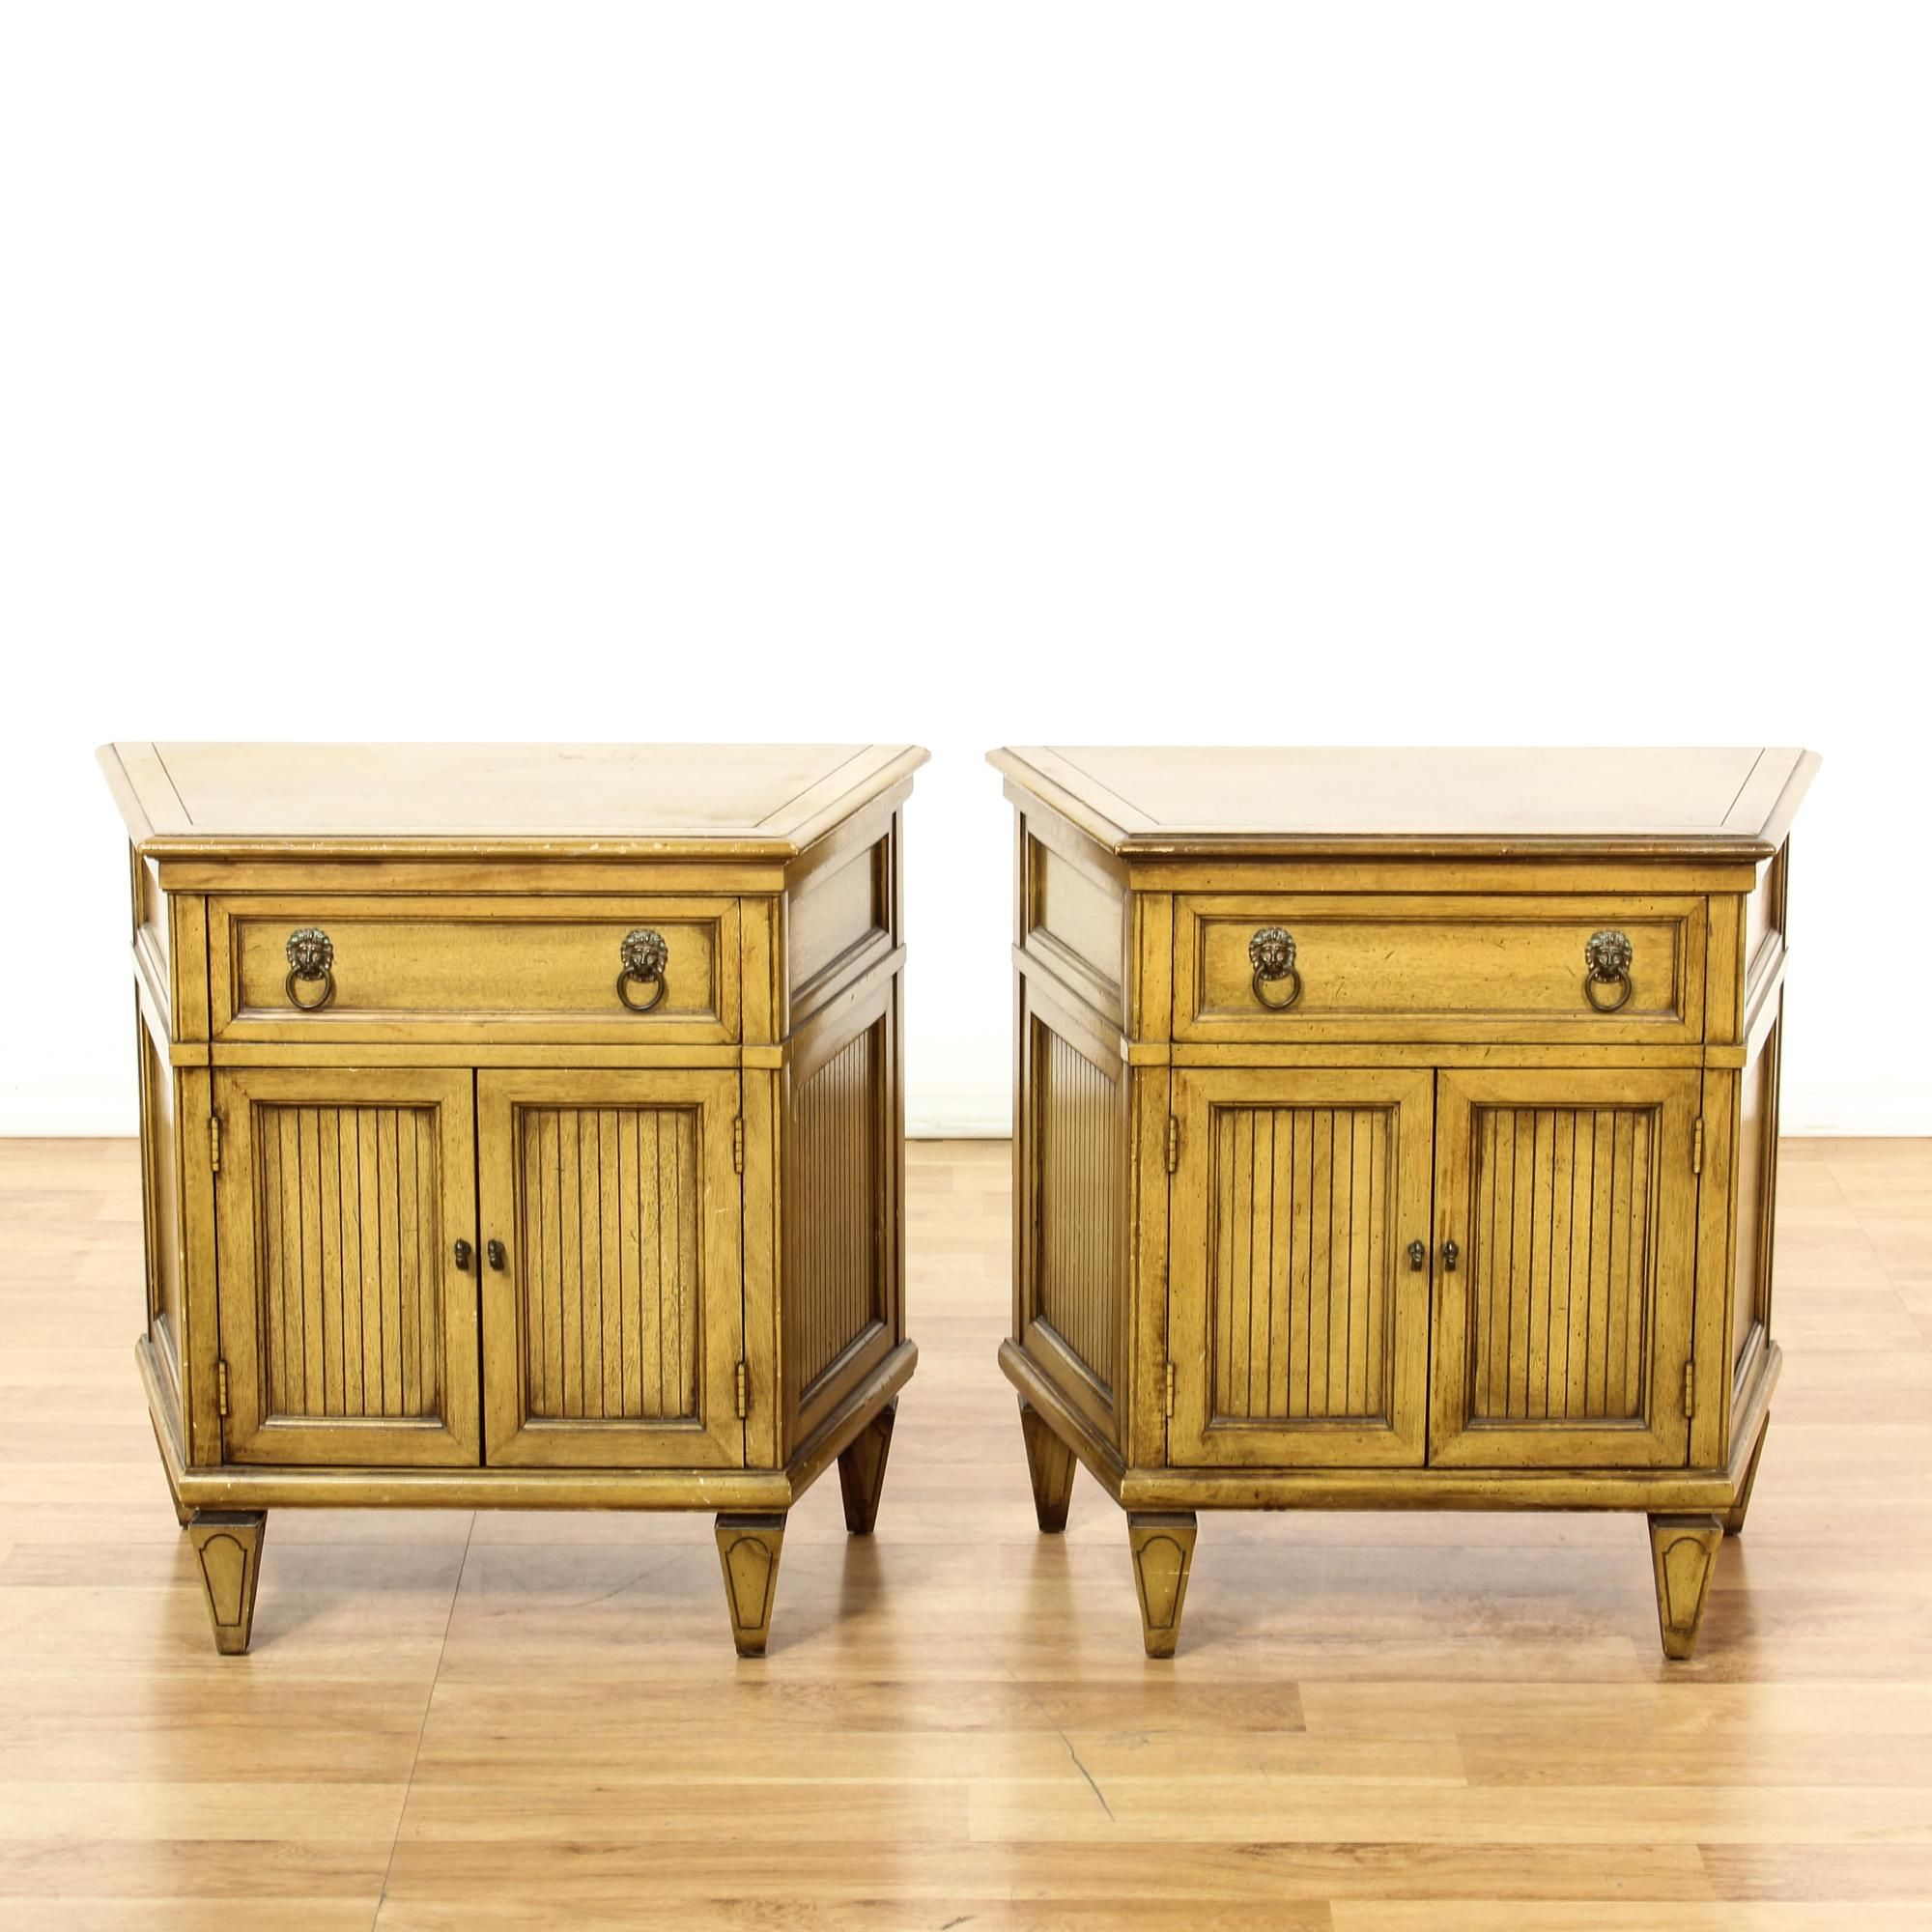 Sideboard Kirschbaum This Pair Of Early American Style Nightstands Are Featured In A